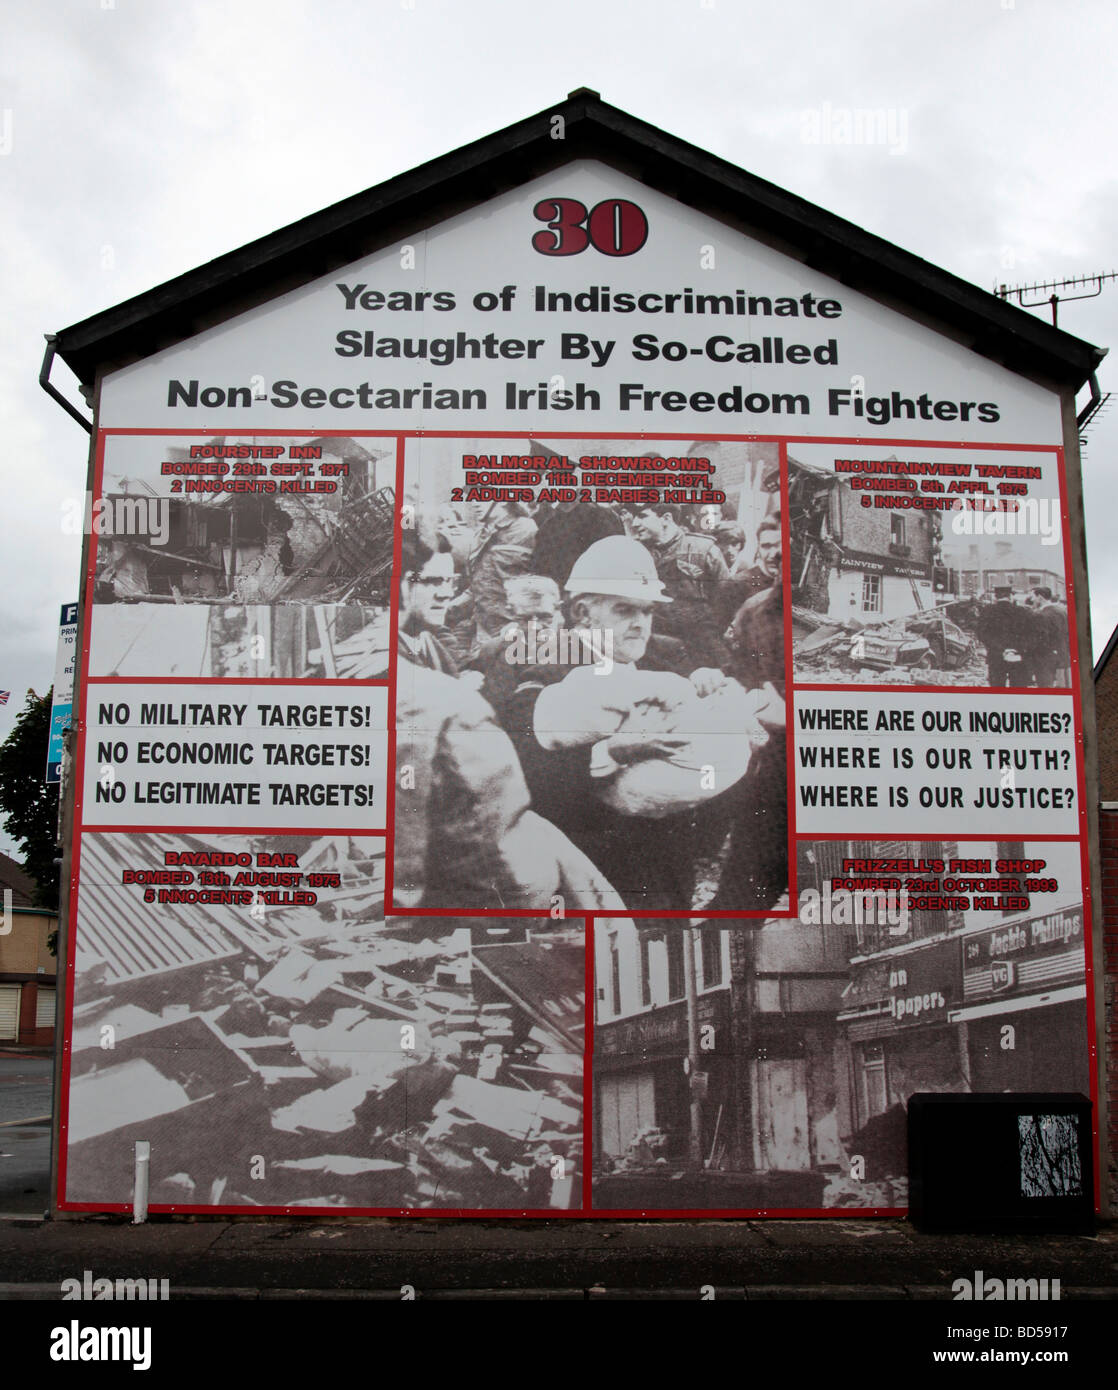 A five-panelled mural from the Loyalist/Unionist area of West Belfast, commemorating '30 years of indiscriminate - Stock Image